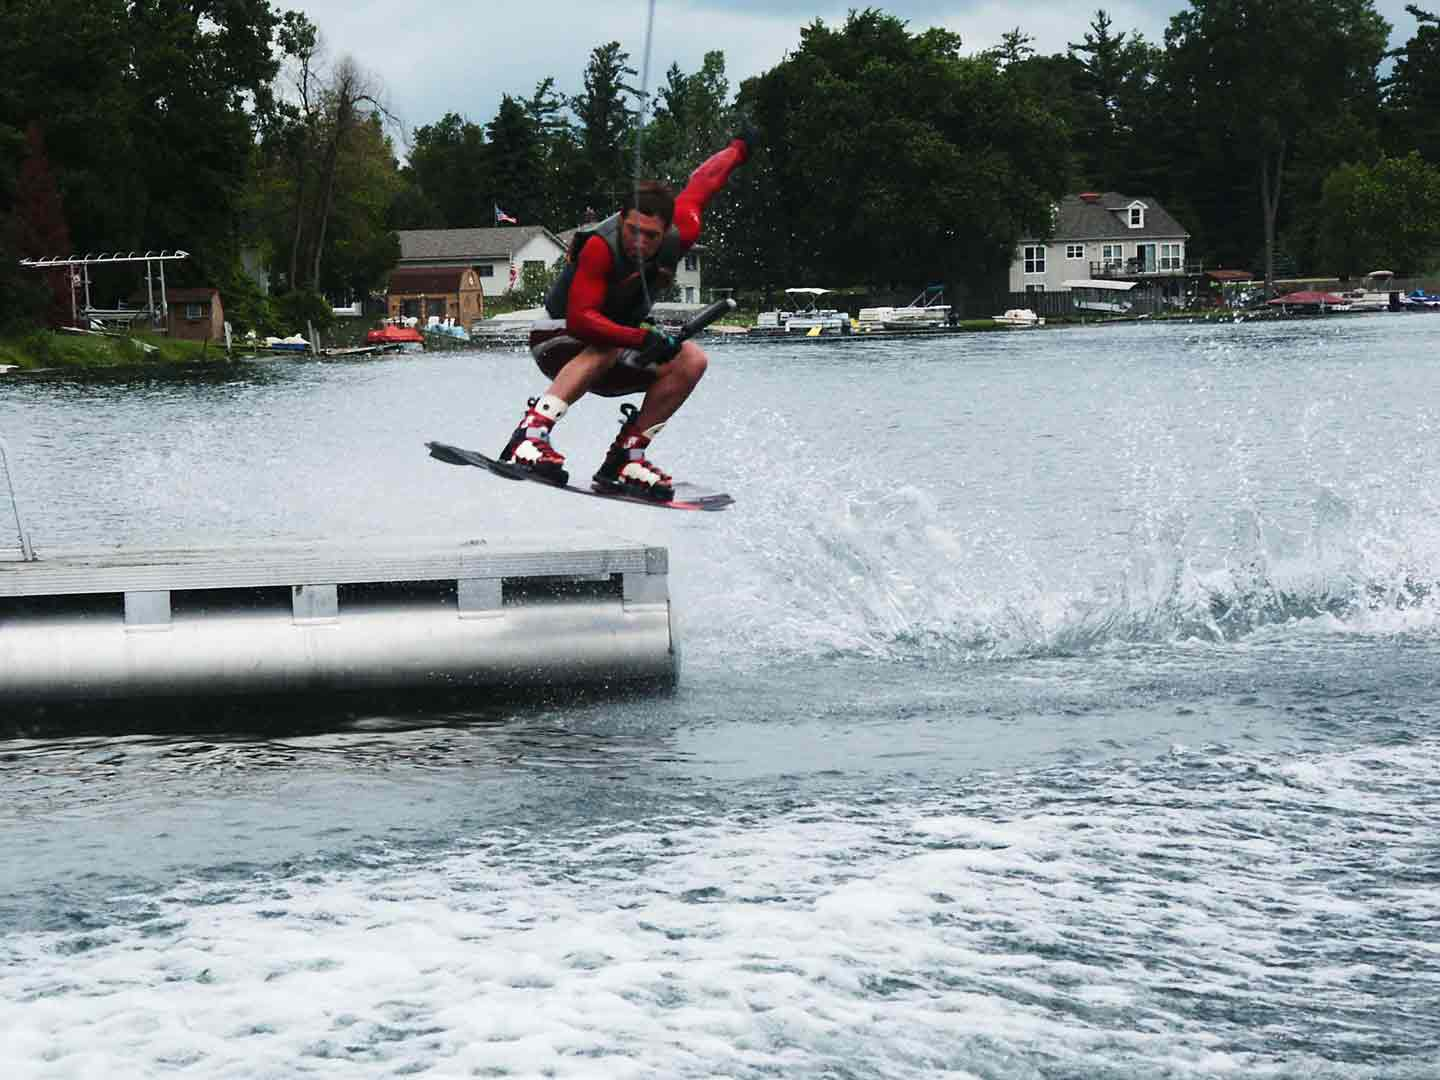 ollie over raft